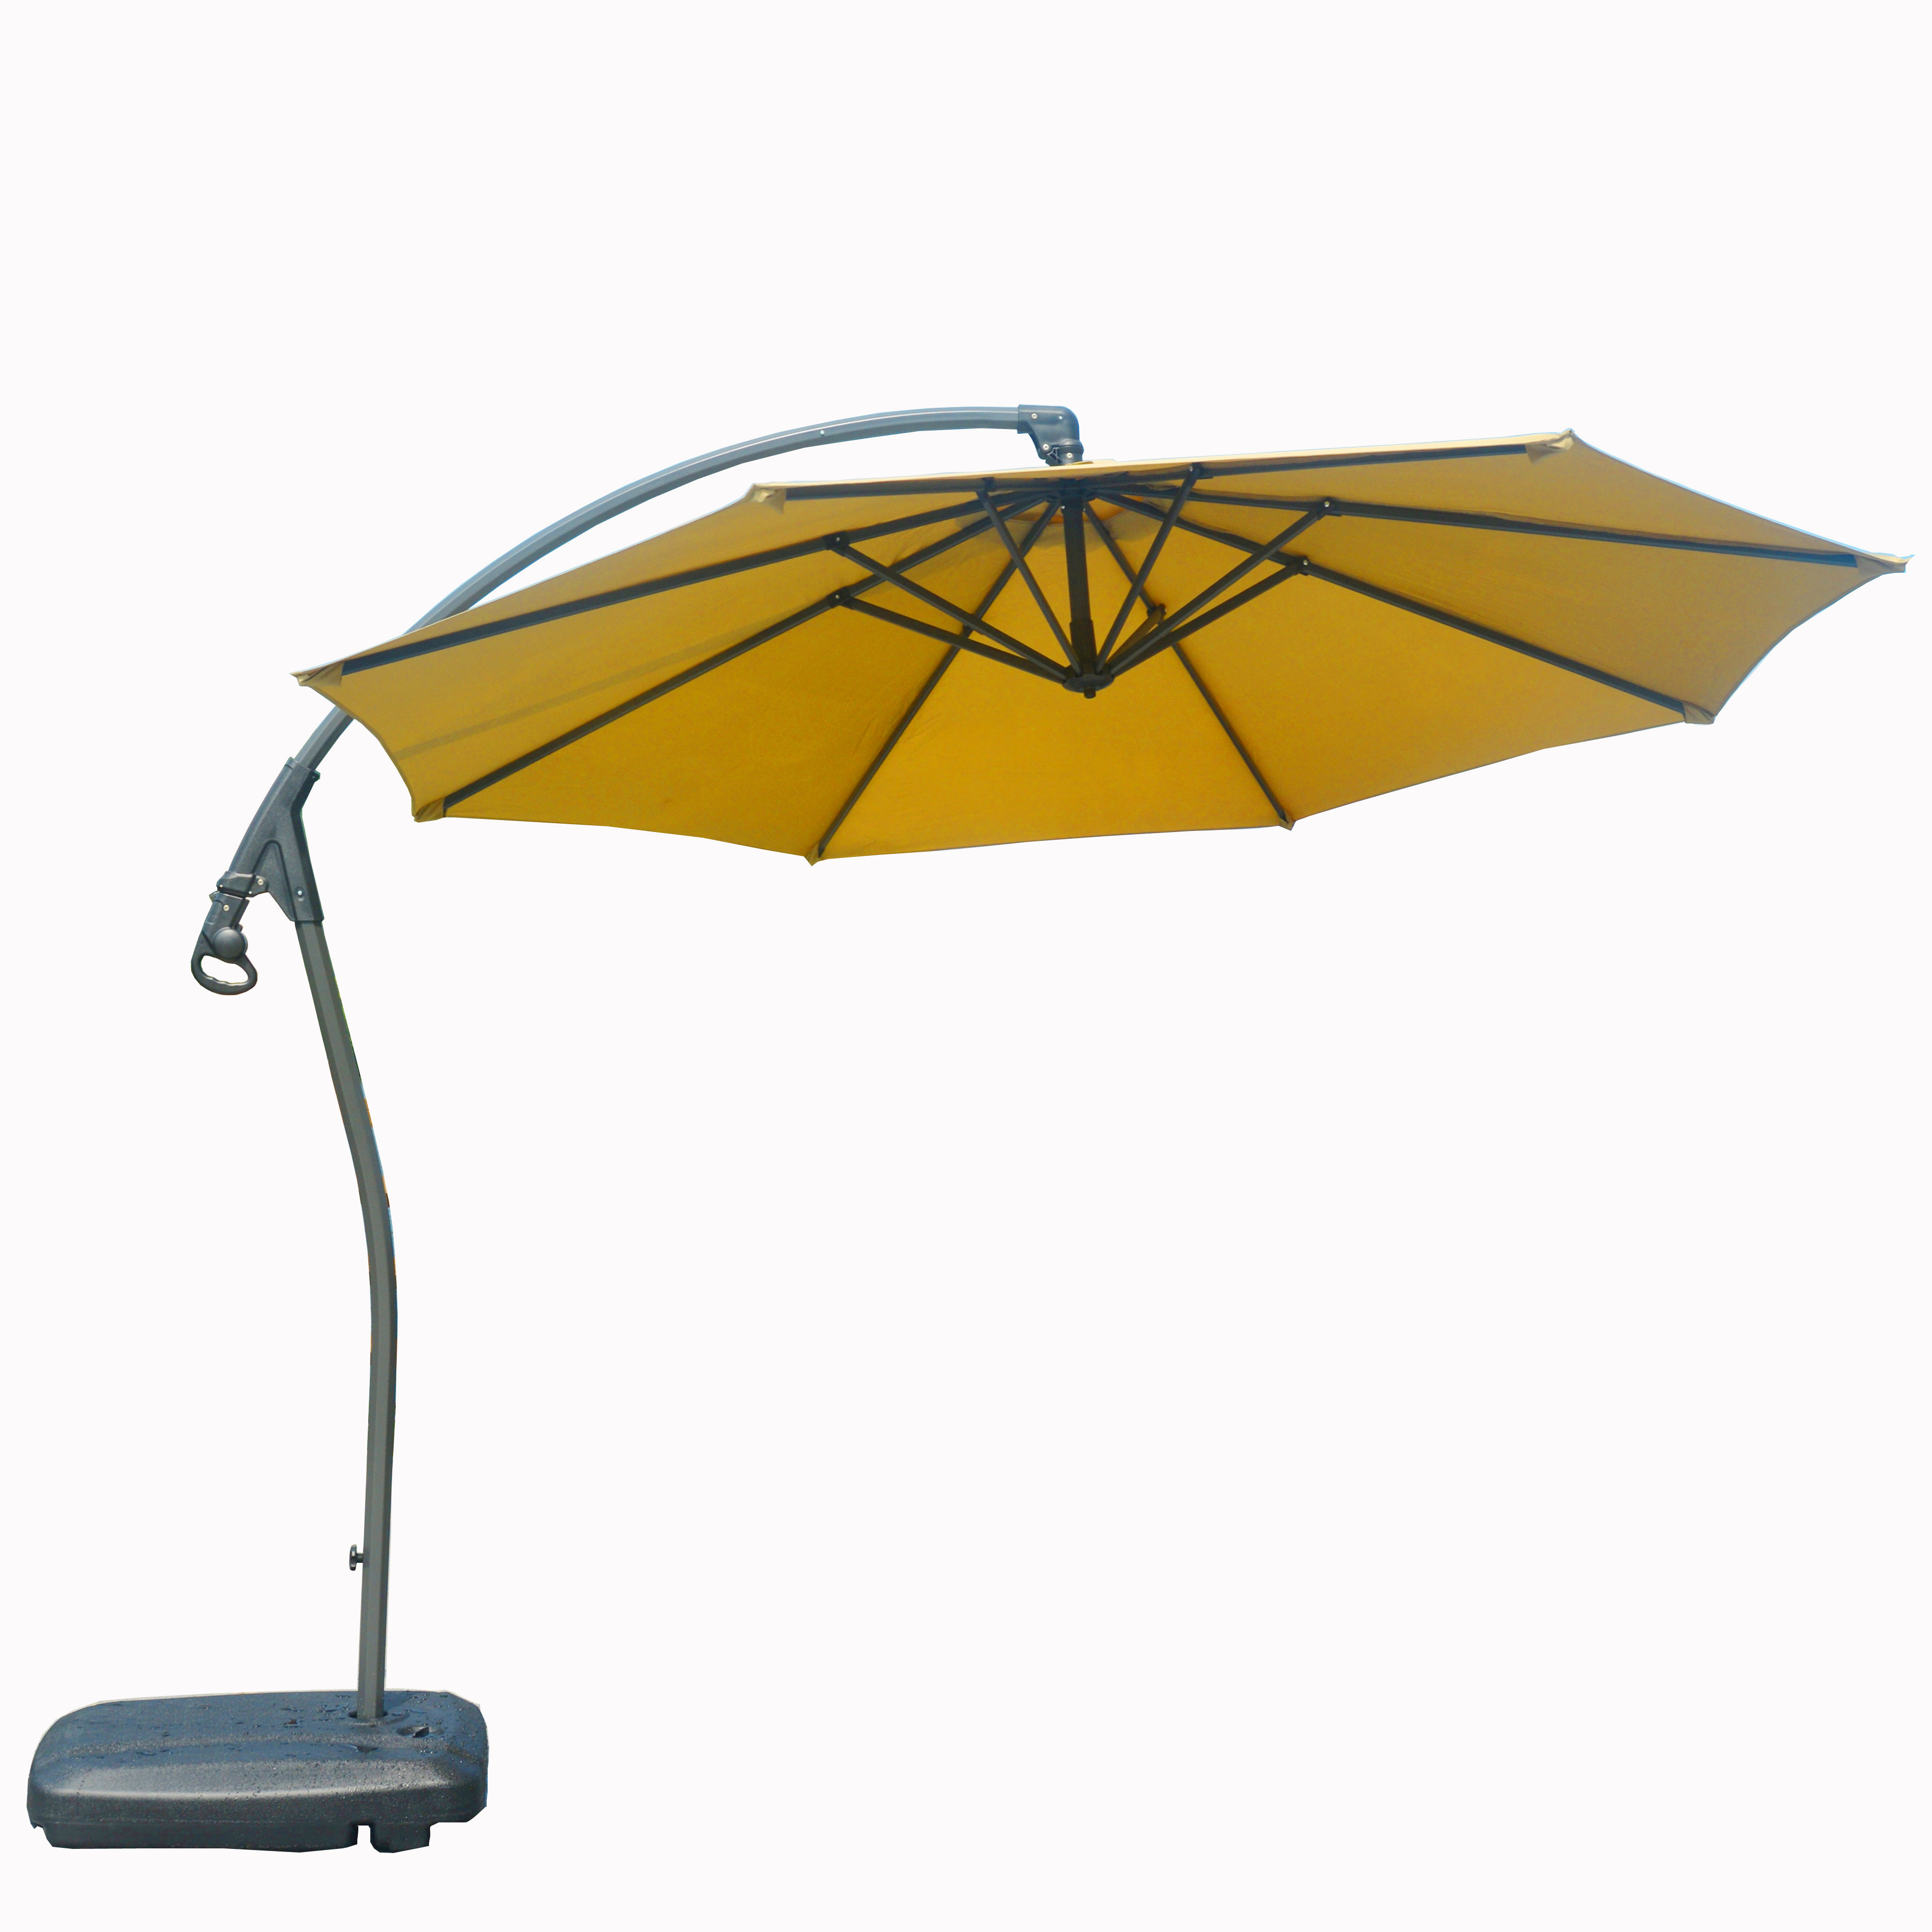 Iyanna Cantilever Umbrellas With Regard To Most Up To Date Hemmer 10' Cantilever Umbrella (View 15 of 20)